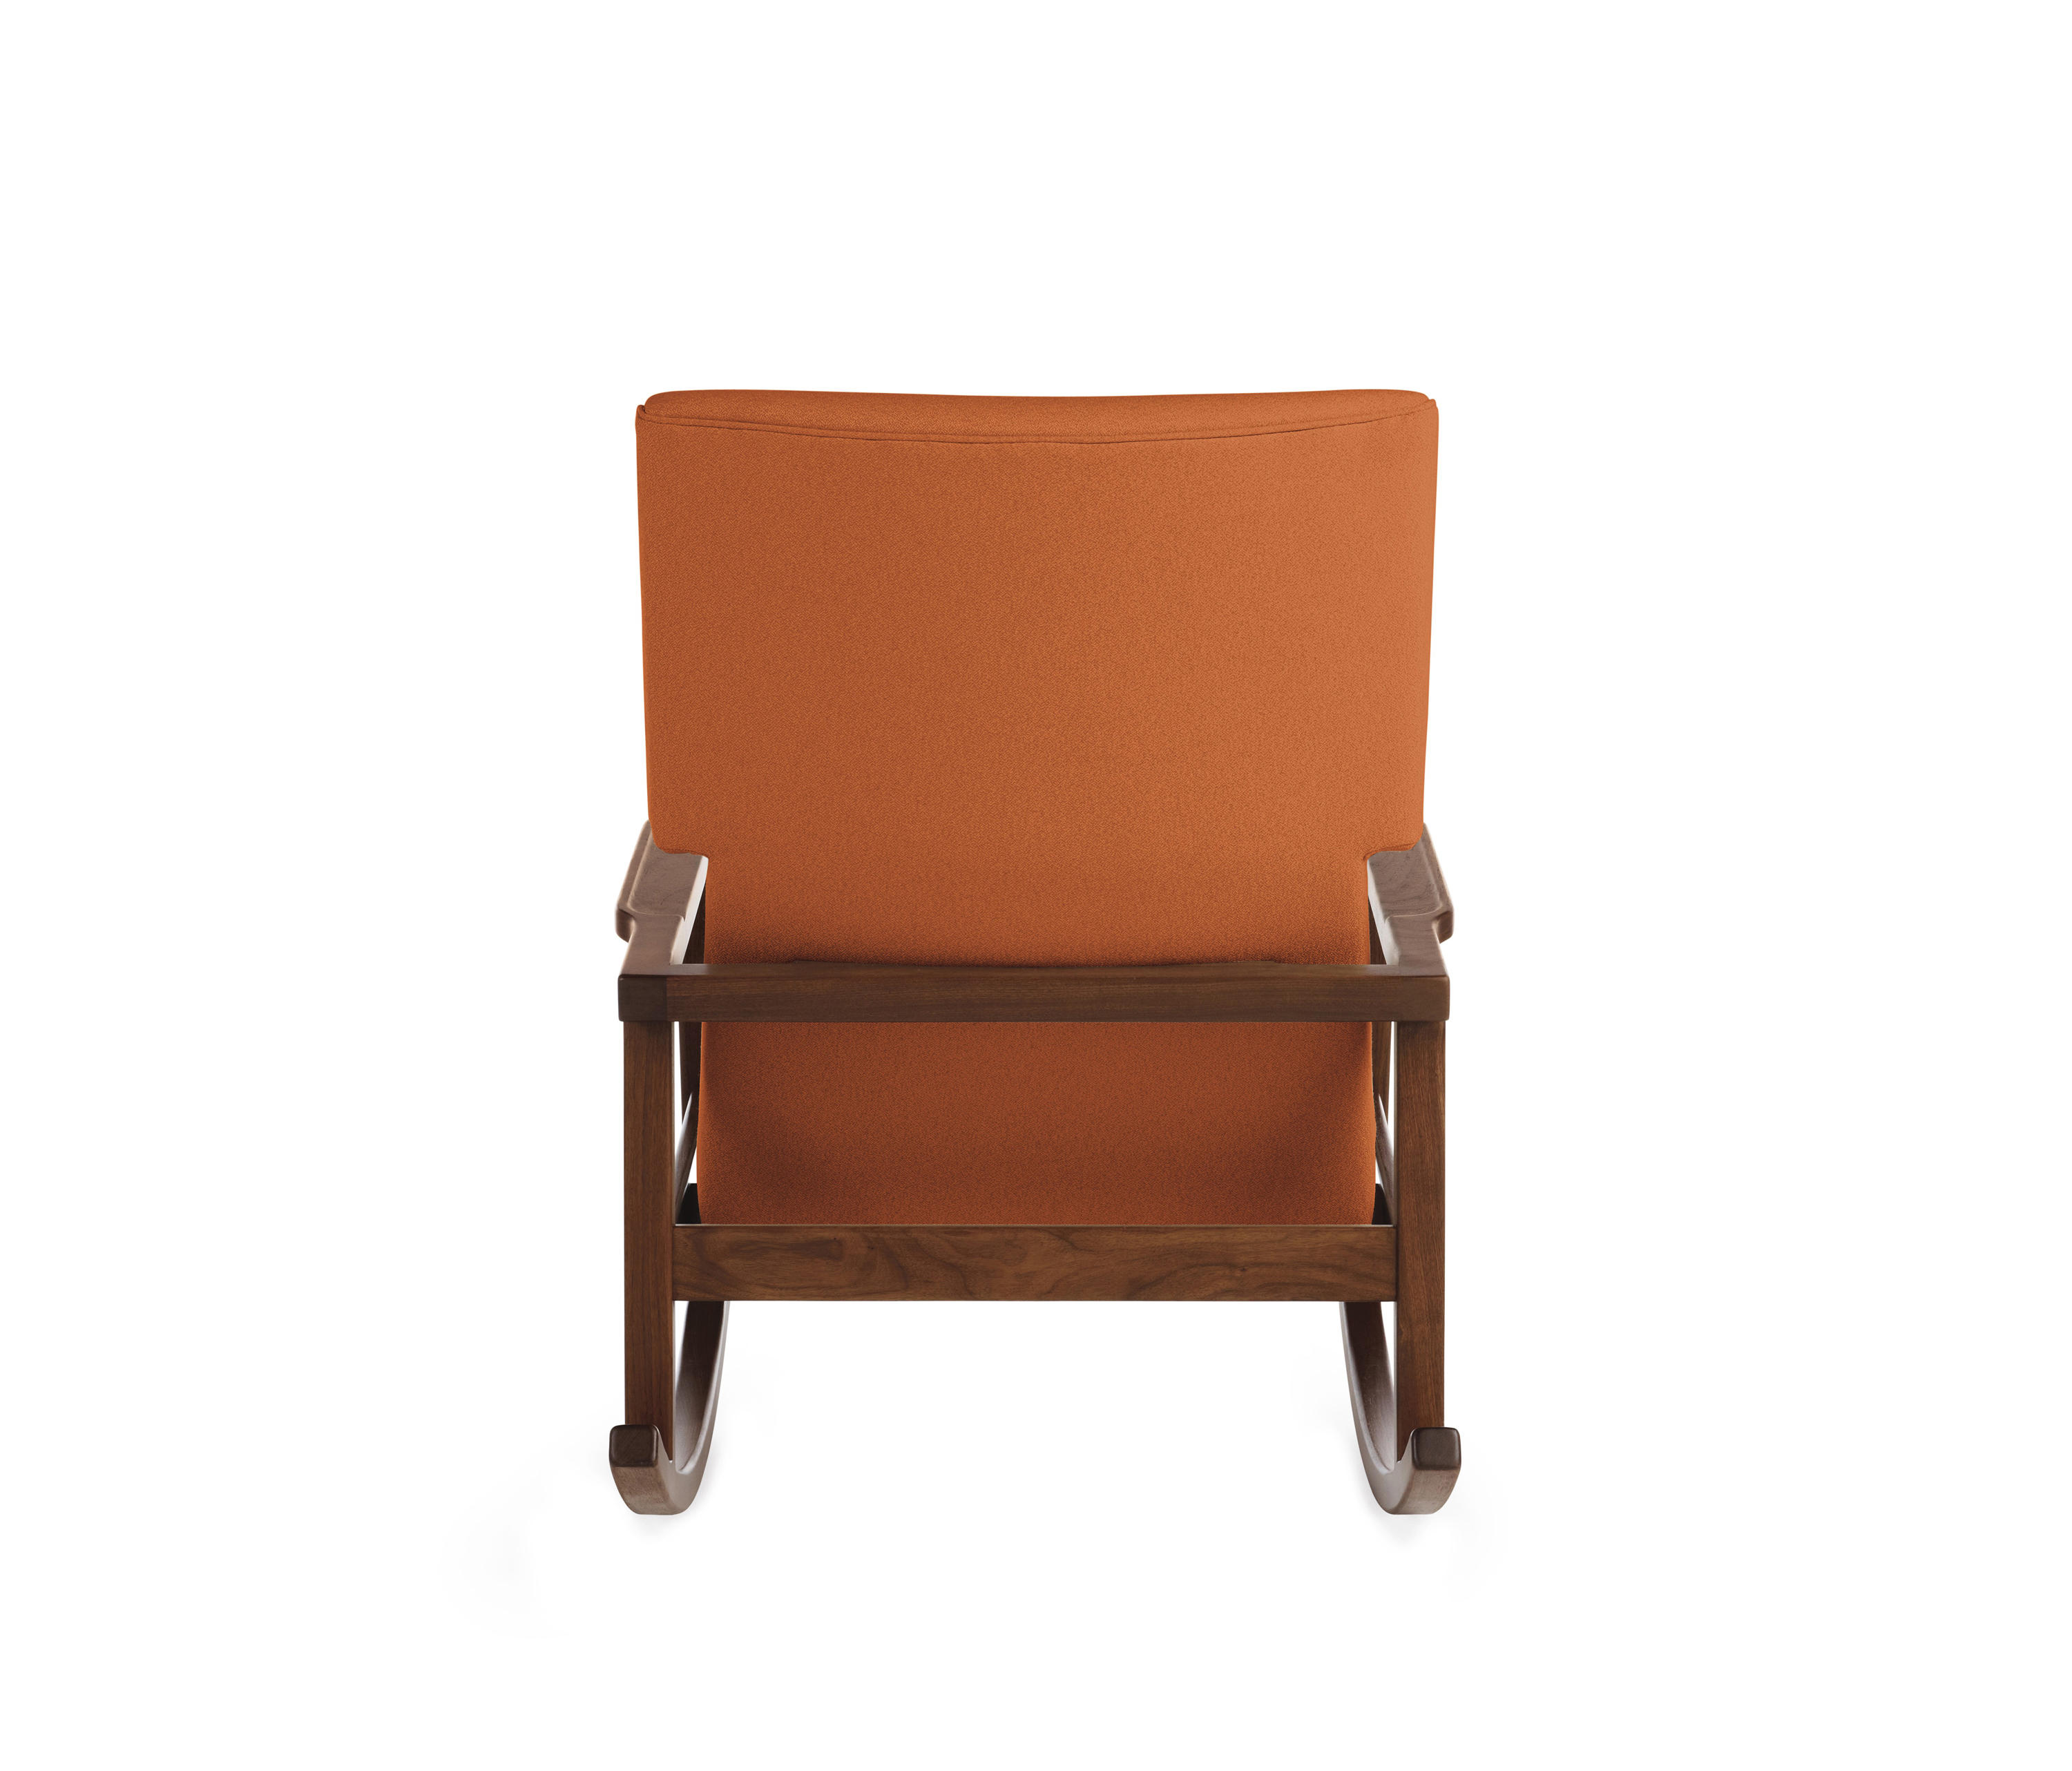 design within reach rocking chair hammock stand canada risom rocker armchairs from architonic